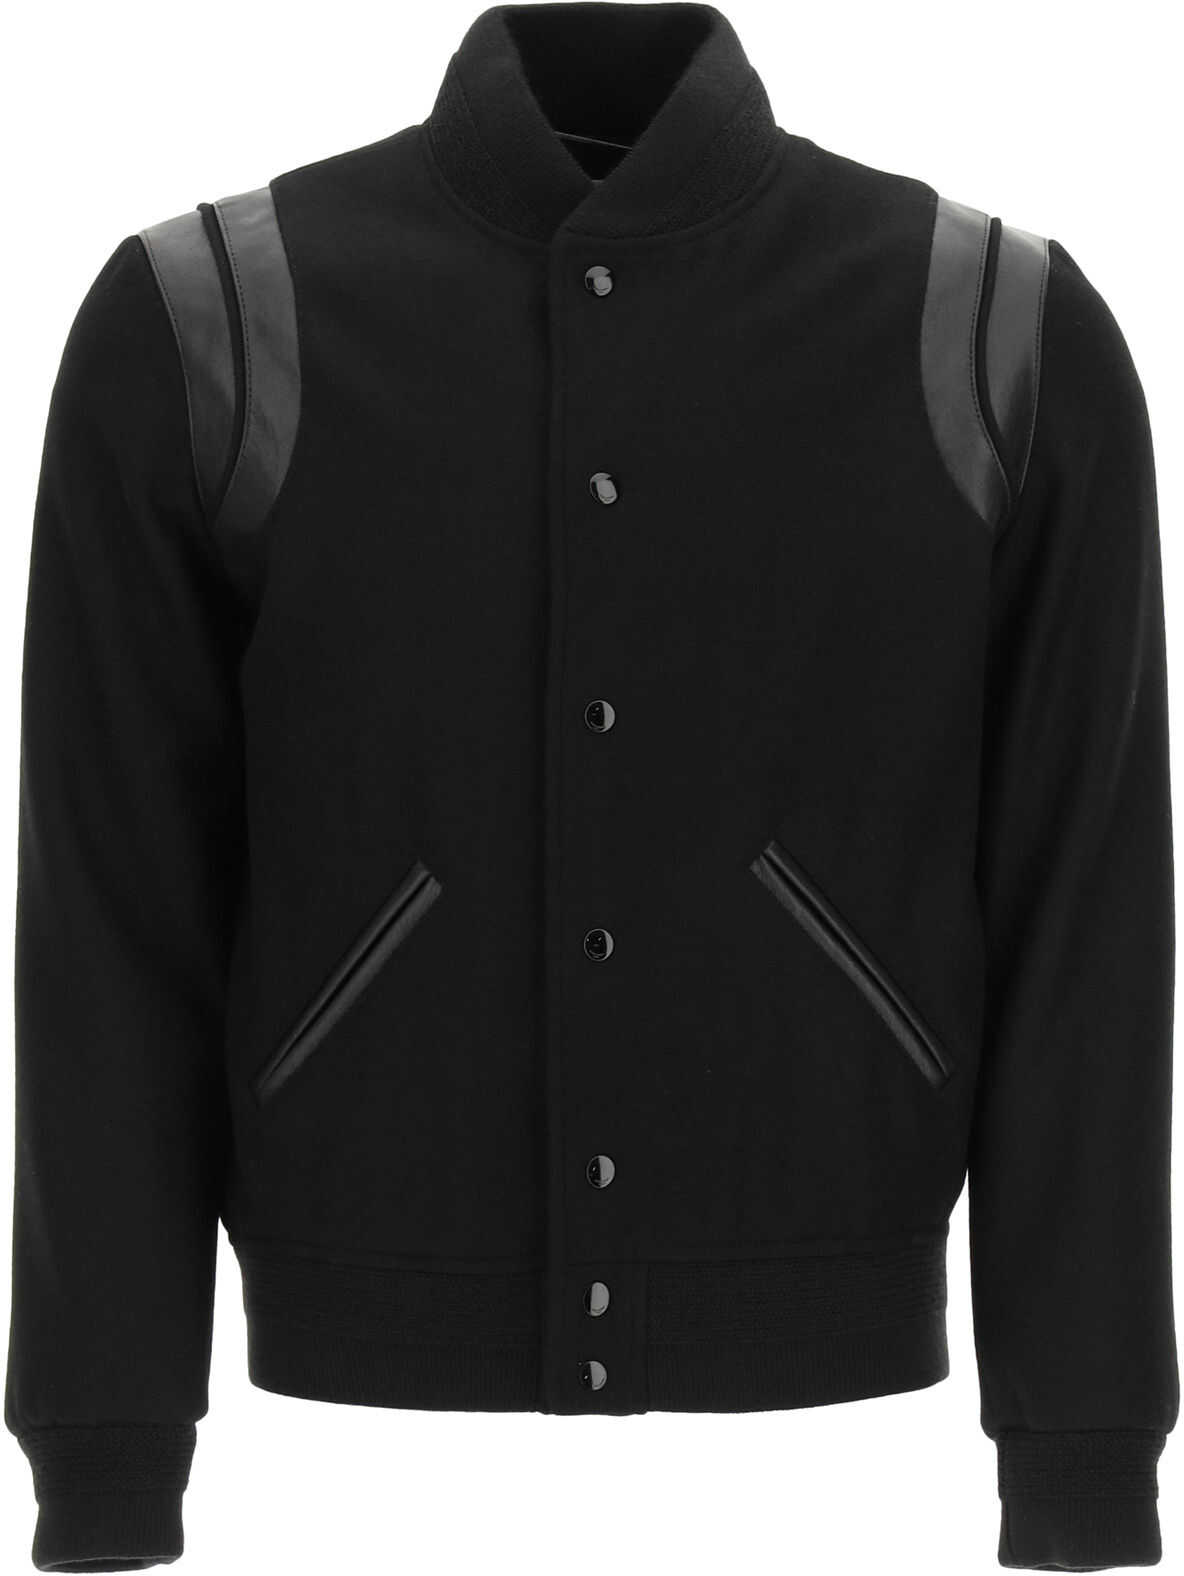 Saint Laurent Teddy Bomber In Wool And Leather BLACK imagine